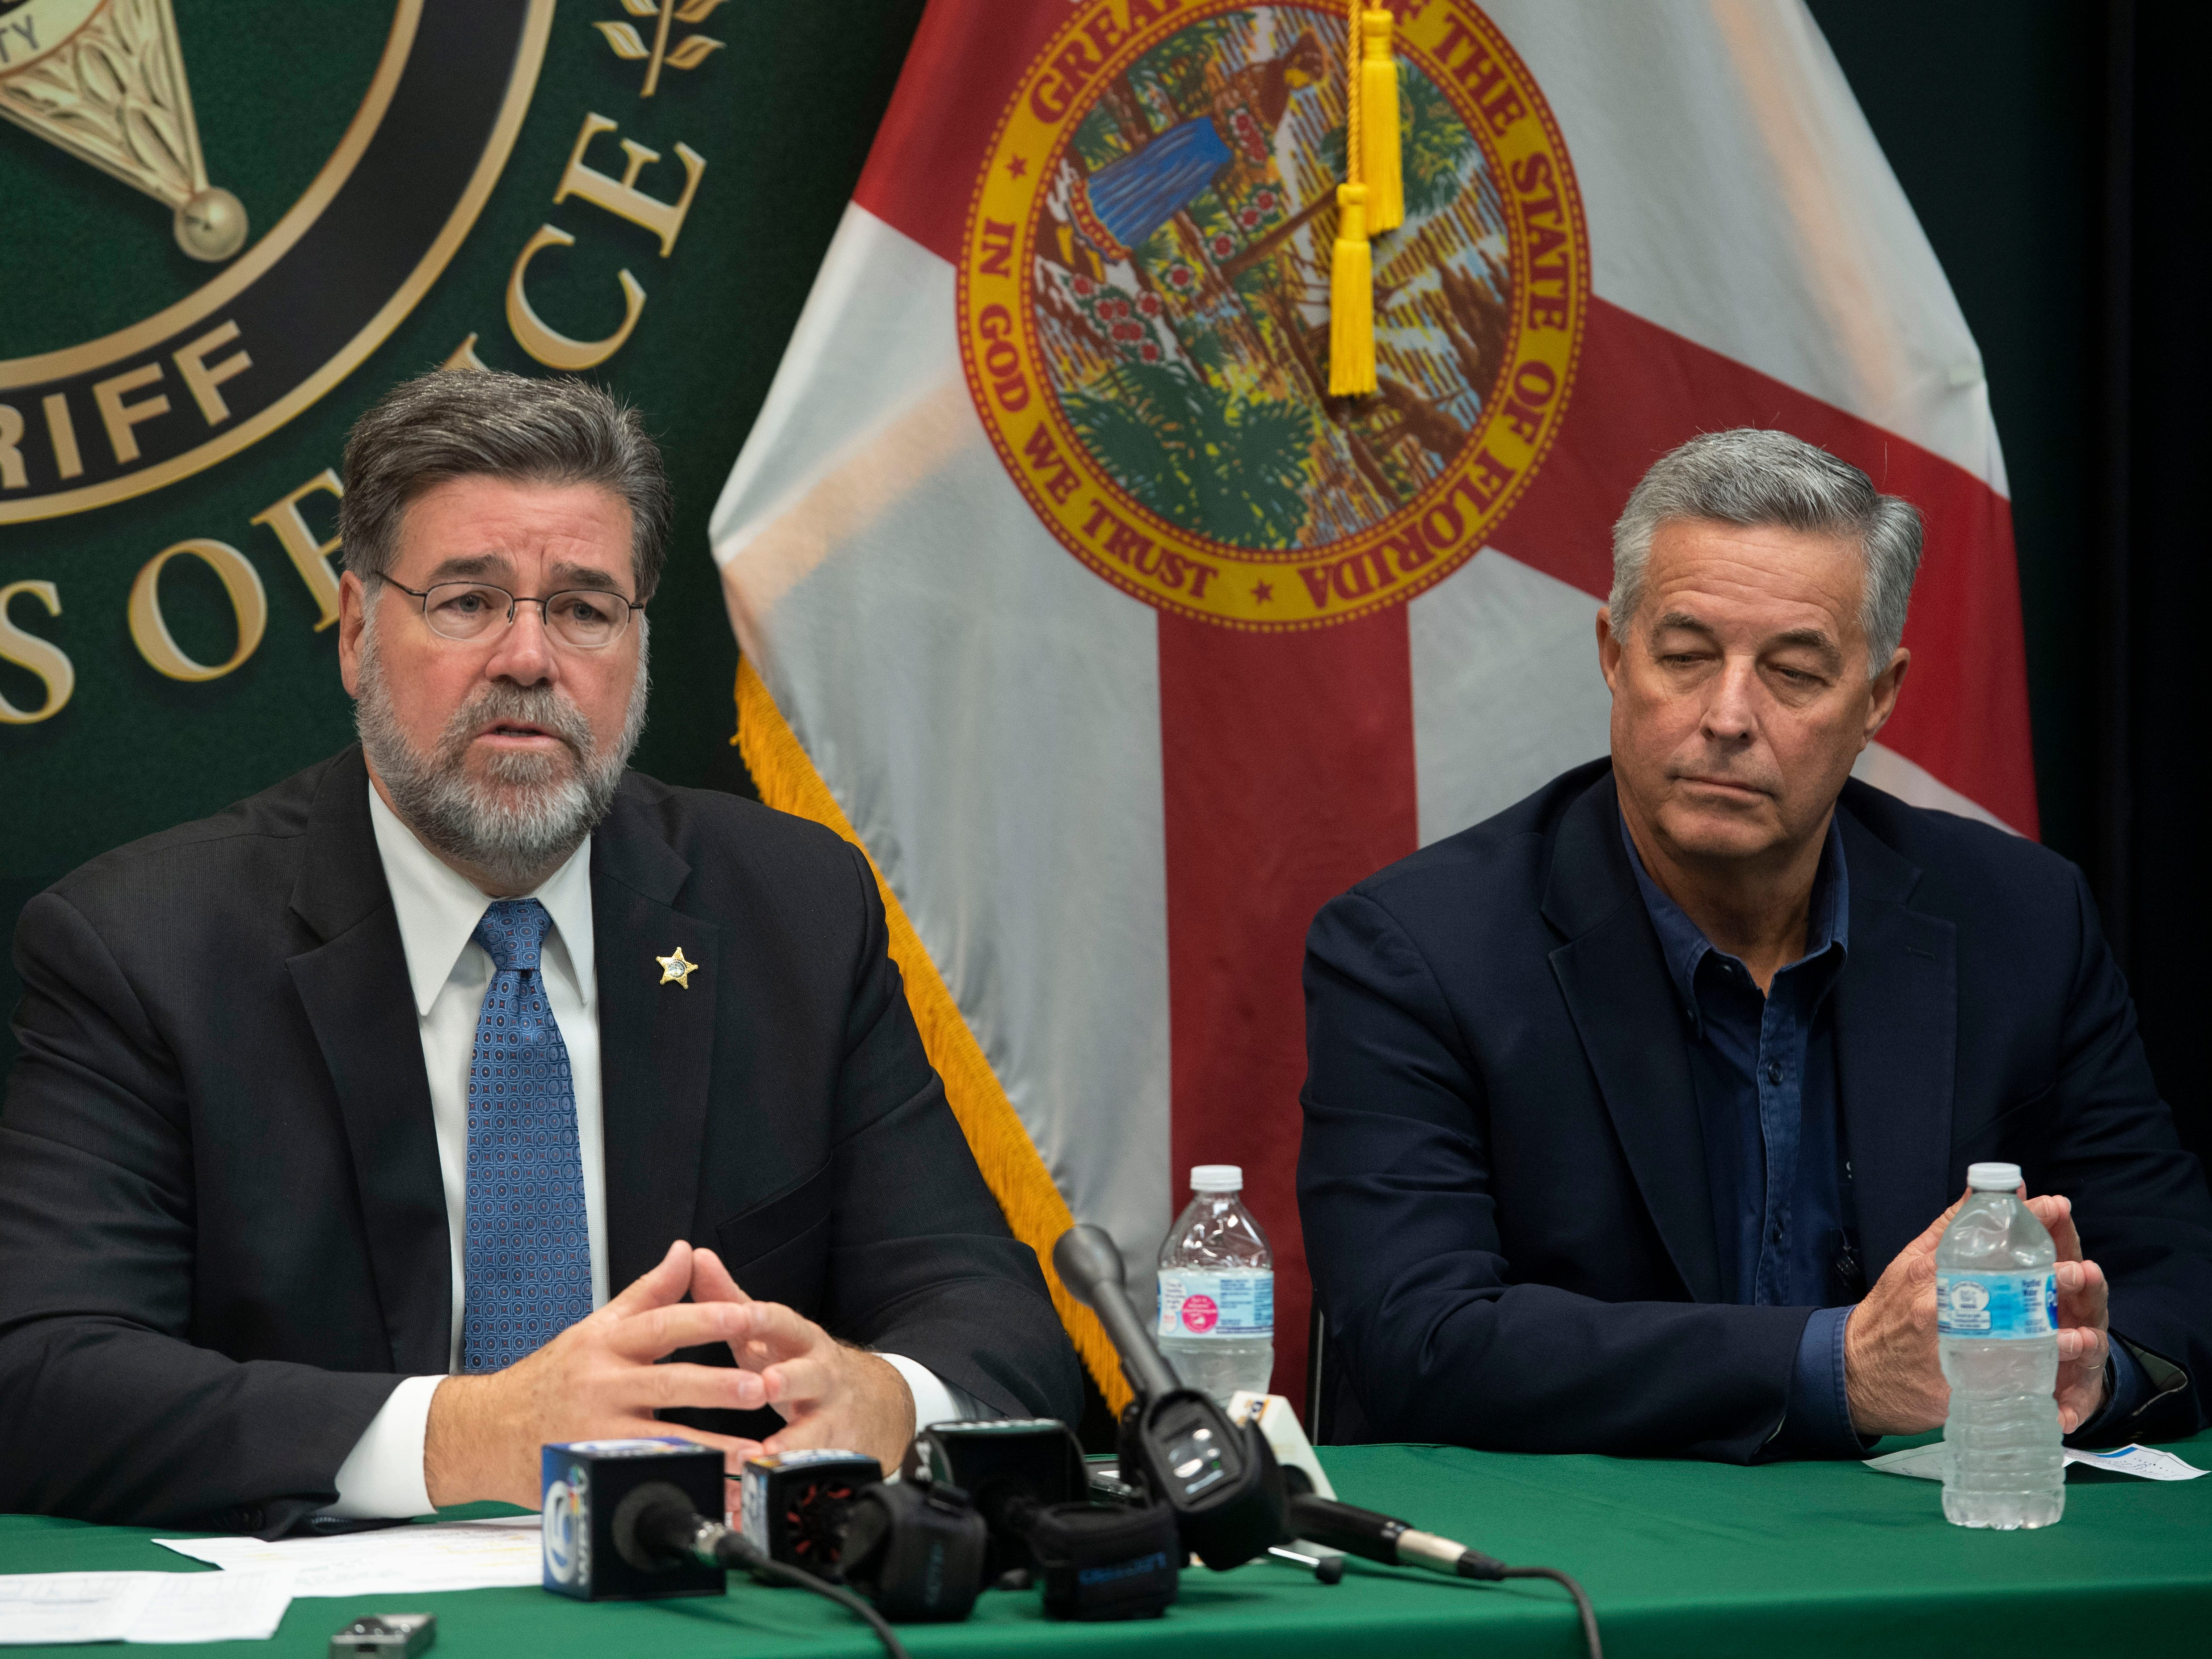 """Every threat on a school campus is taken seriously,"" said St. Lucie County Sheriff Ken Mascara (left) during a news conference with St. Lucie County Public Schools Superintendent Wayne Gent (right) and Captain Brian Hester (not pictured) on Friday, Jan. 11, 2019, at the St. Lucie County Sheriff's Office in Fort Pierce. Since the mass shooting at Marjory Stoneman Douglas High School last February in Parkland, Gent said the school district has mandated single points of entry at all schools, upgraded security systems and fencing around campuses and emphasized training for students and school staff."